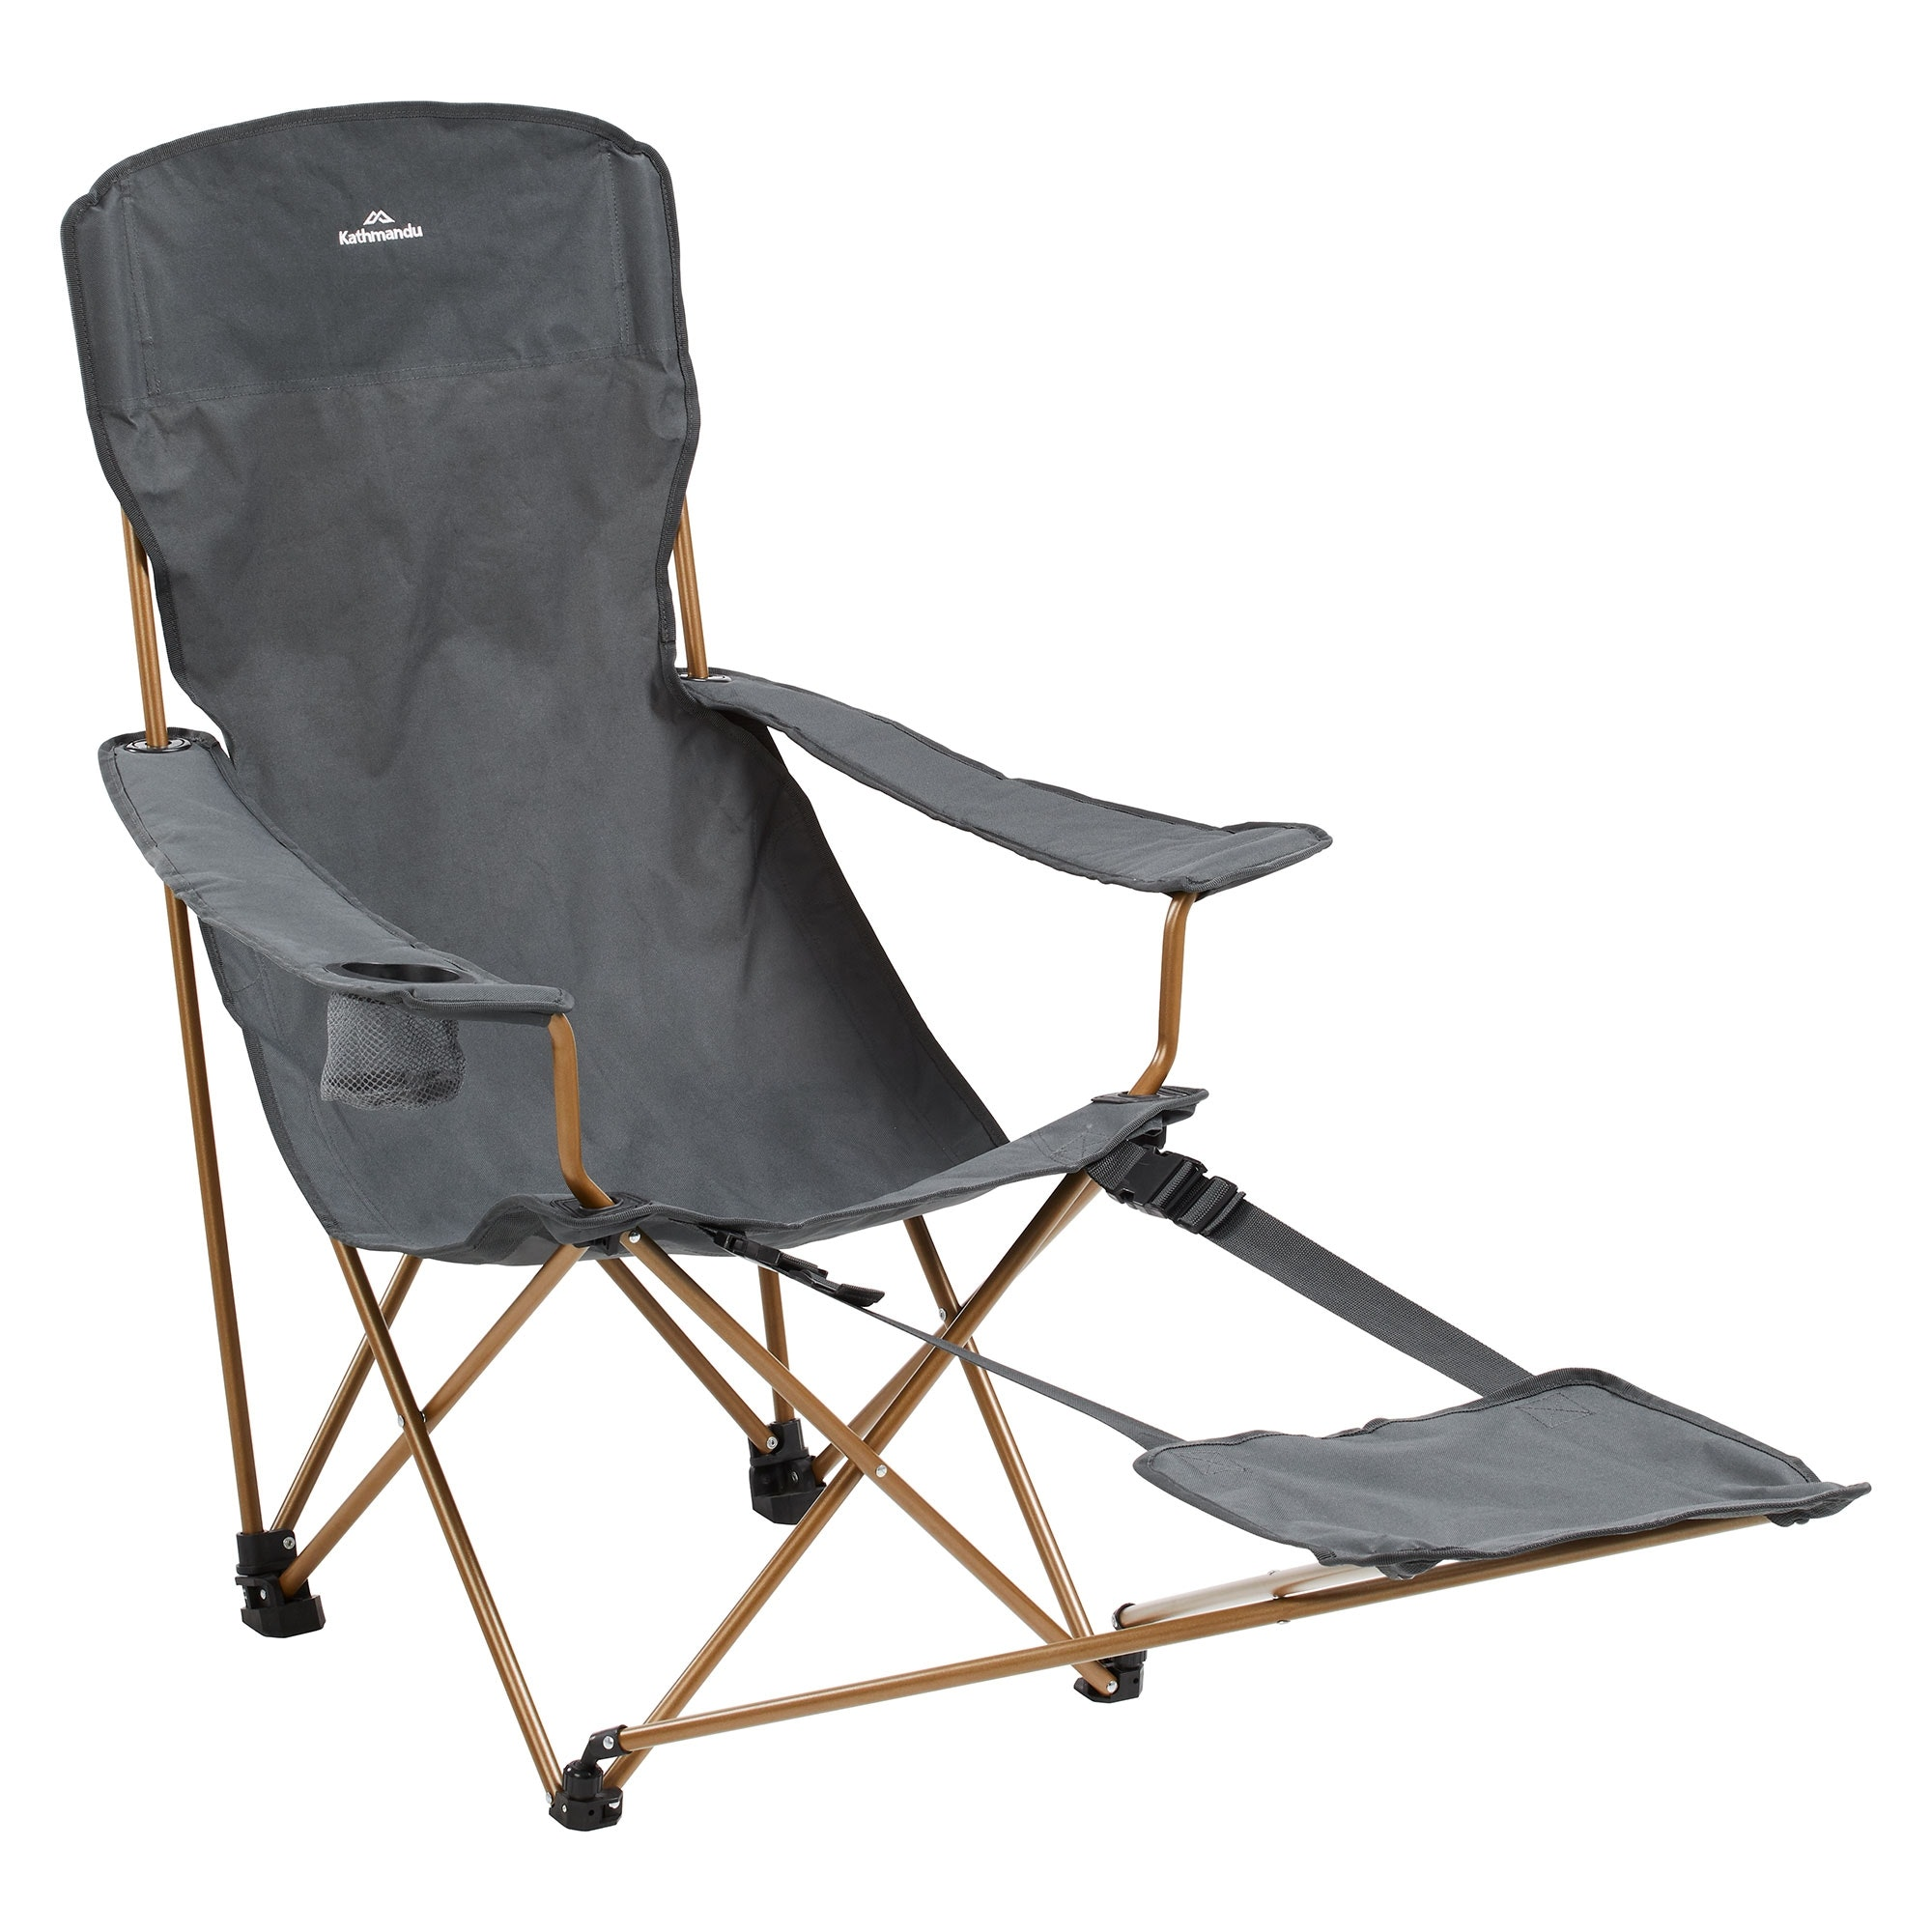 Heavy Duty Outdoor Chairs Camping Furniture Folding Camp Chair Camping Footrest Heavy Duty